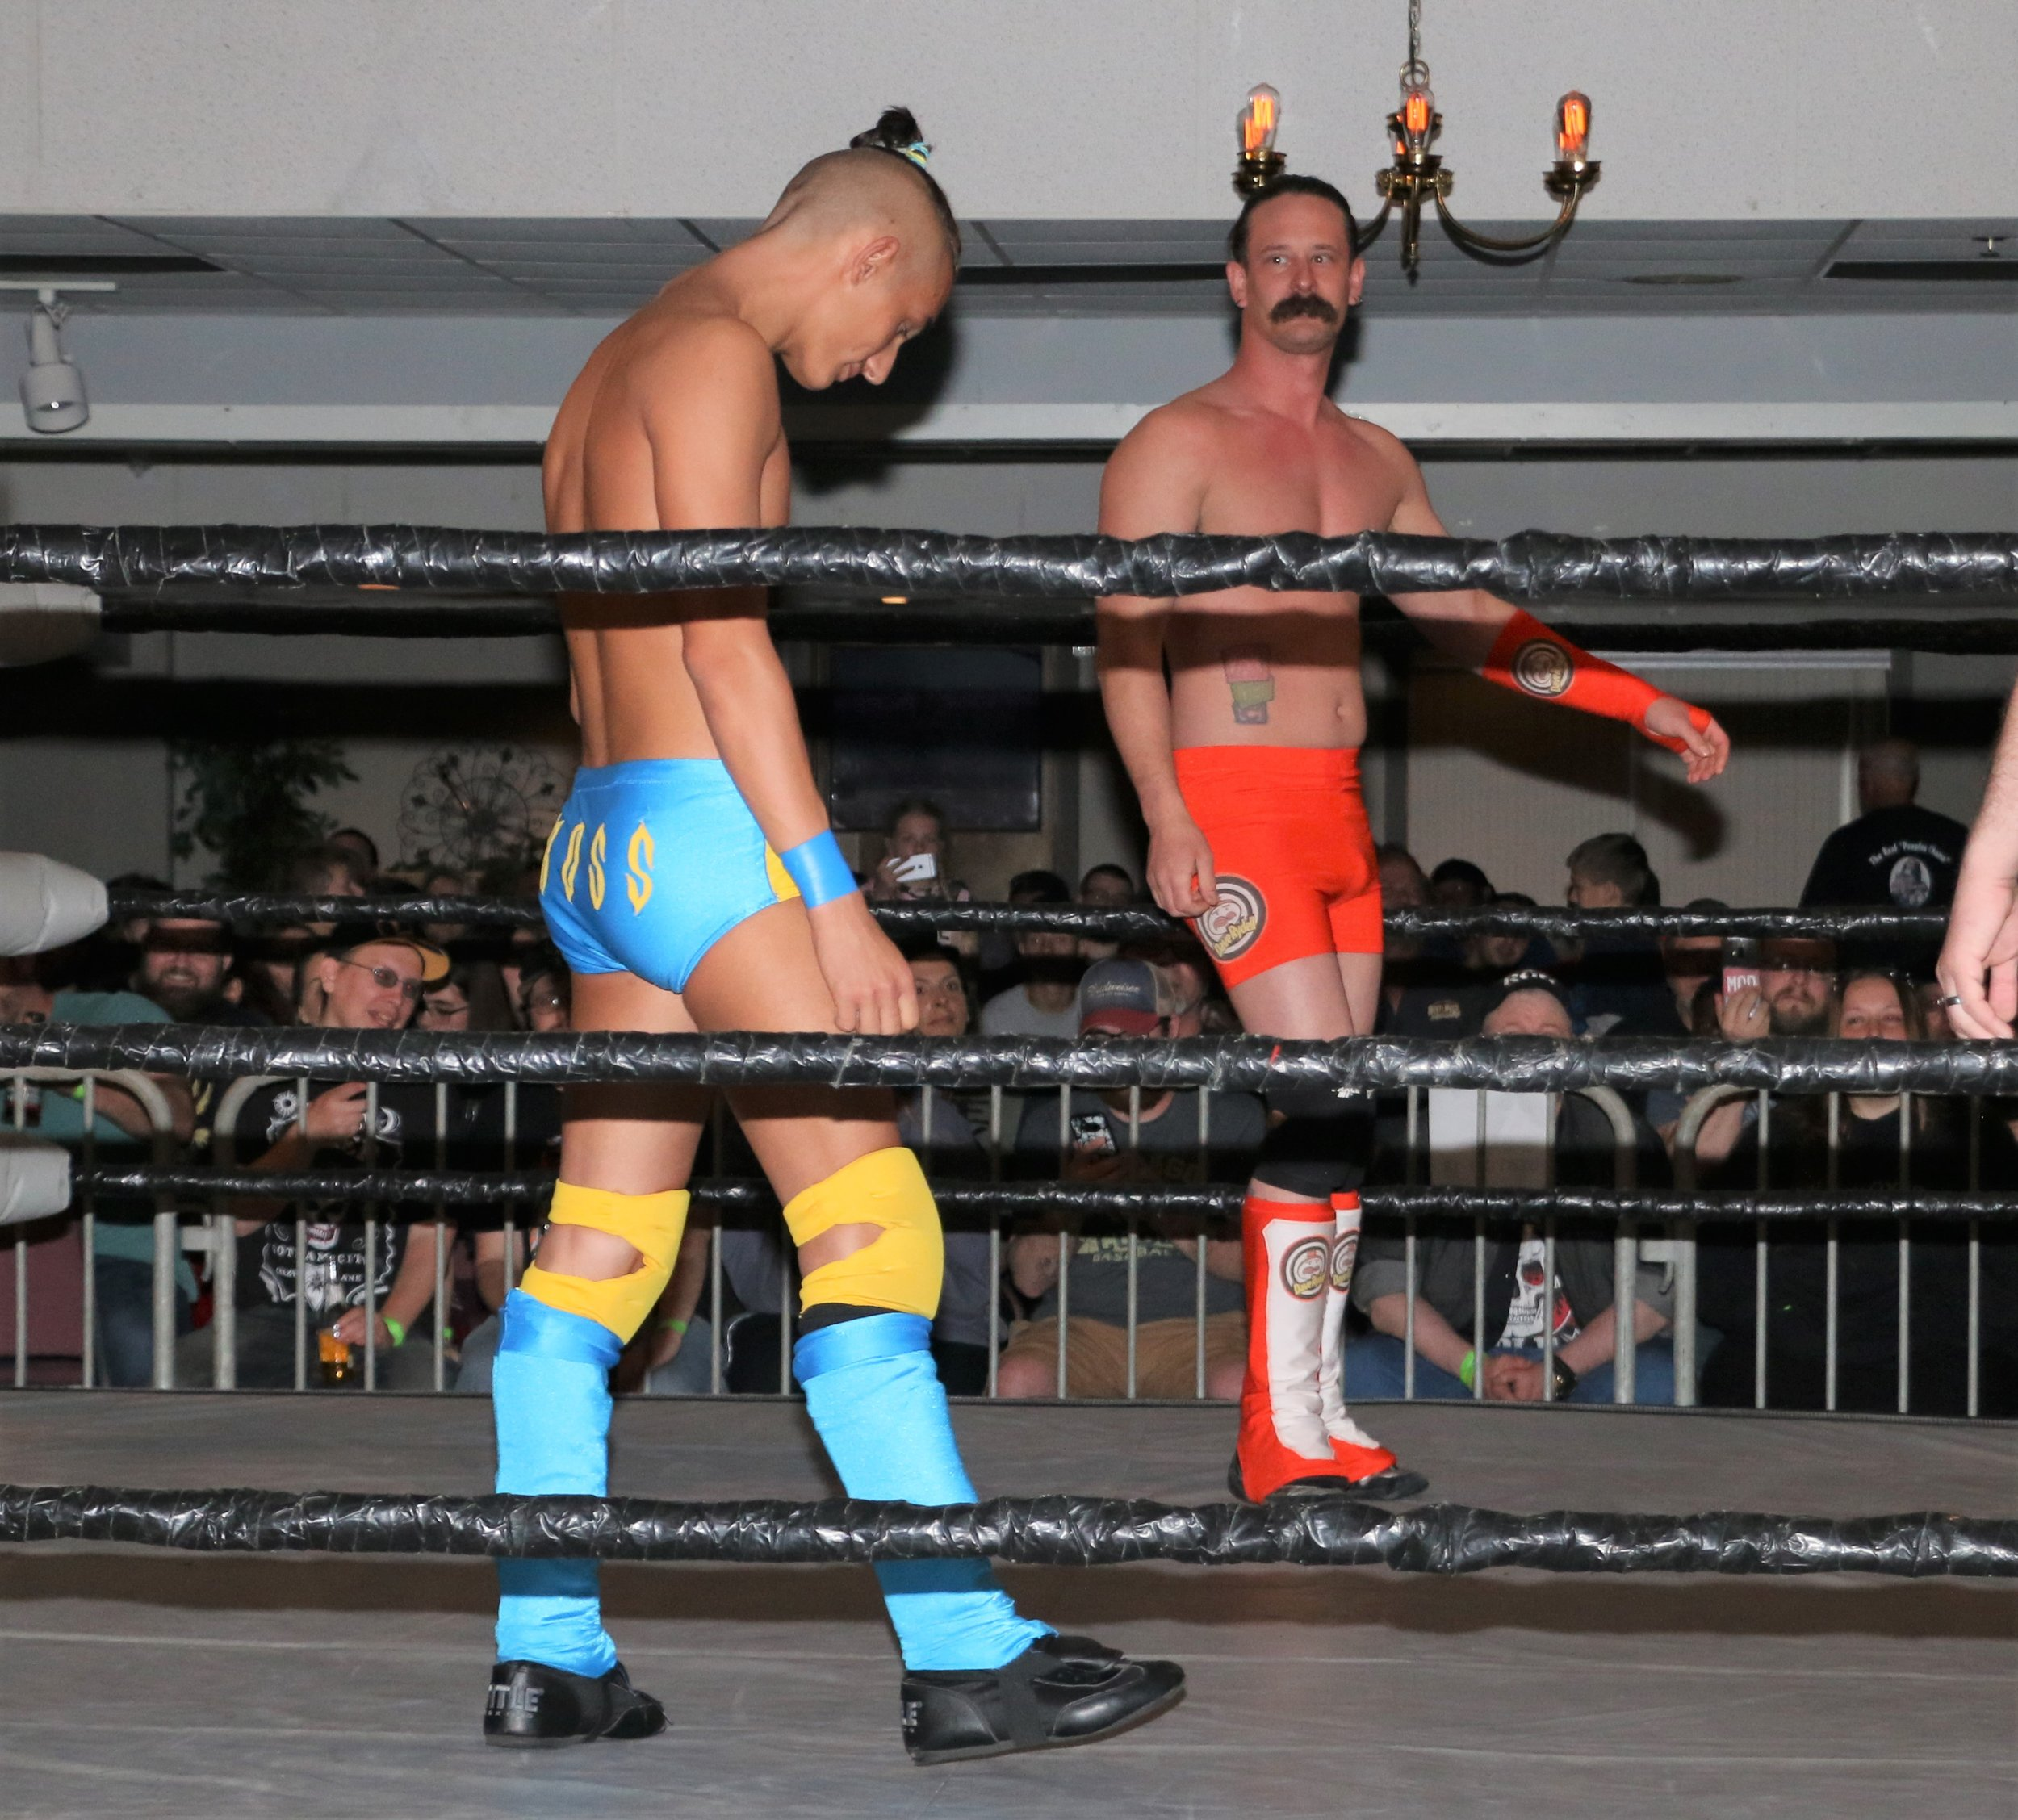 Jordan Kross gets ready to square off with Chicago's Dave Rydell during the six-man tag team match.